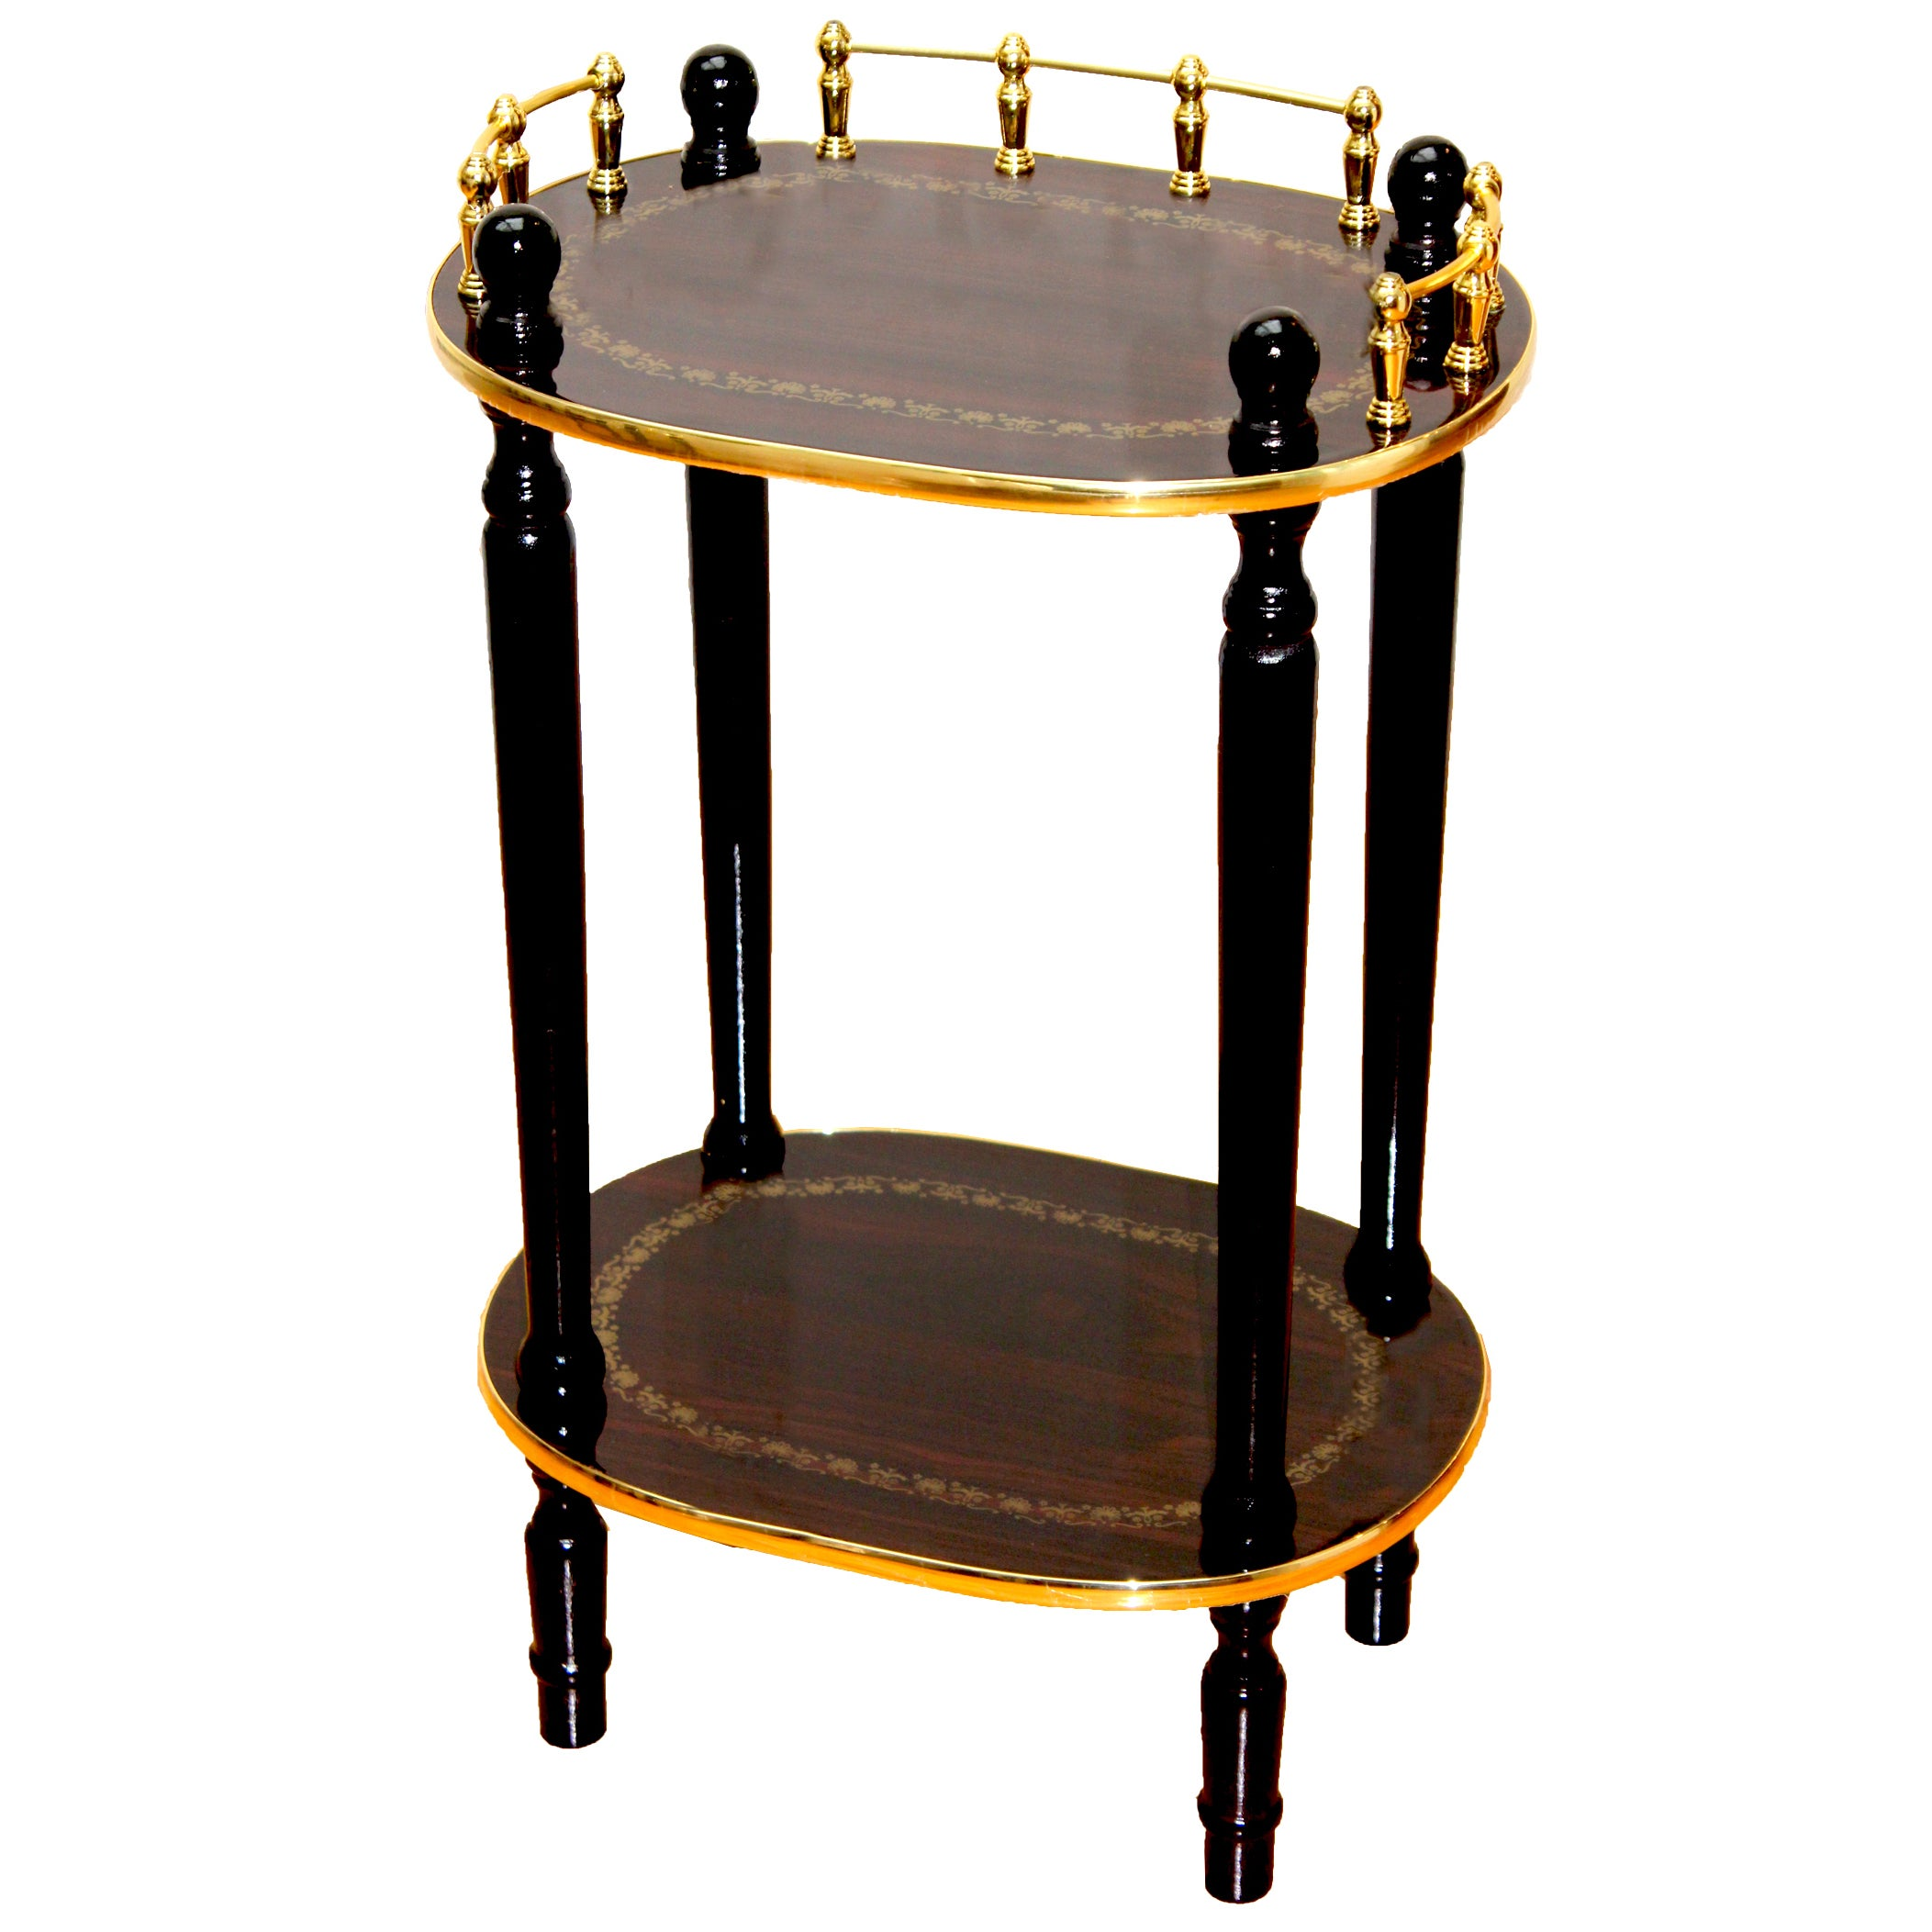 Telephone Table 2-tiered telephone table, gold marble and cherry finish 2-tiered